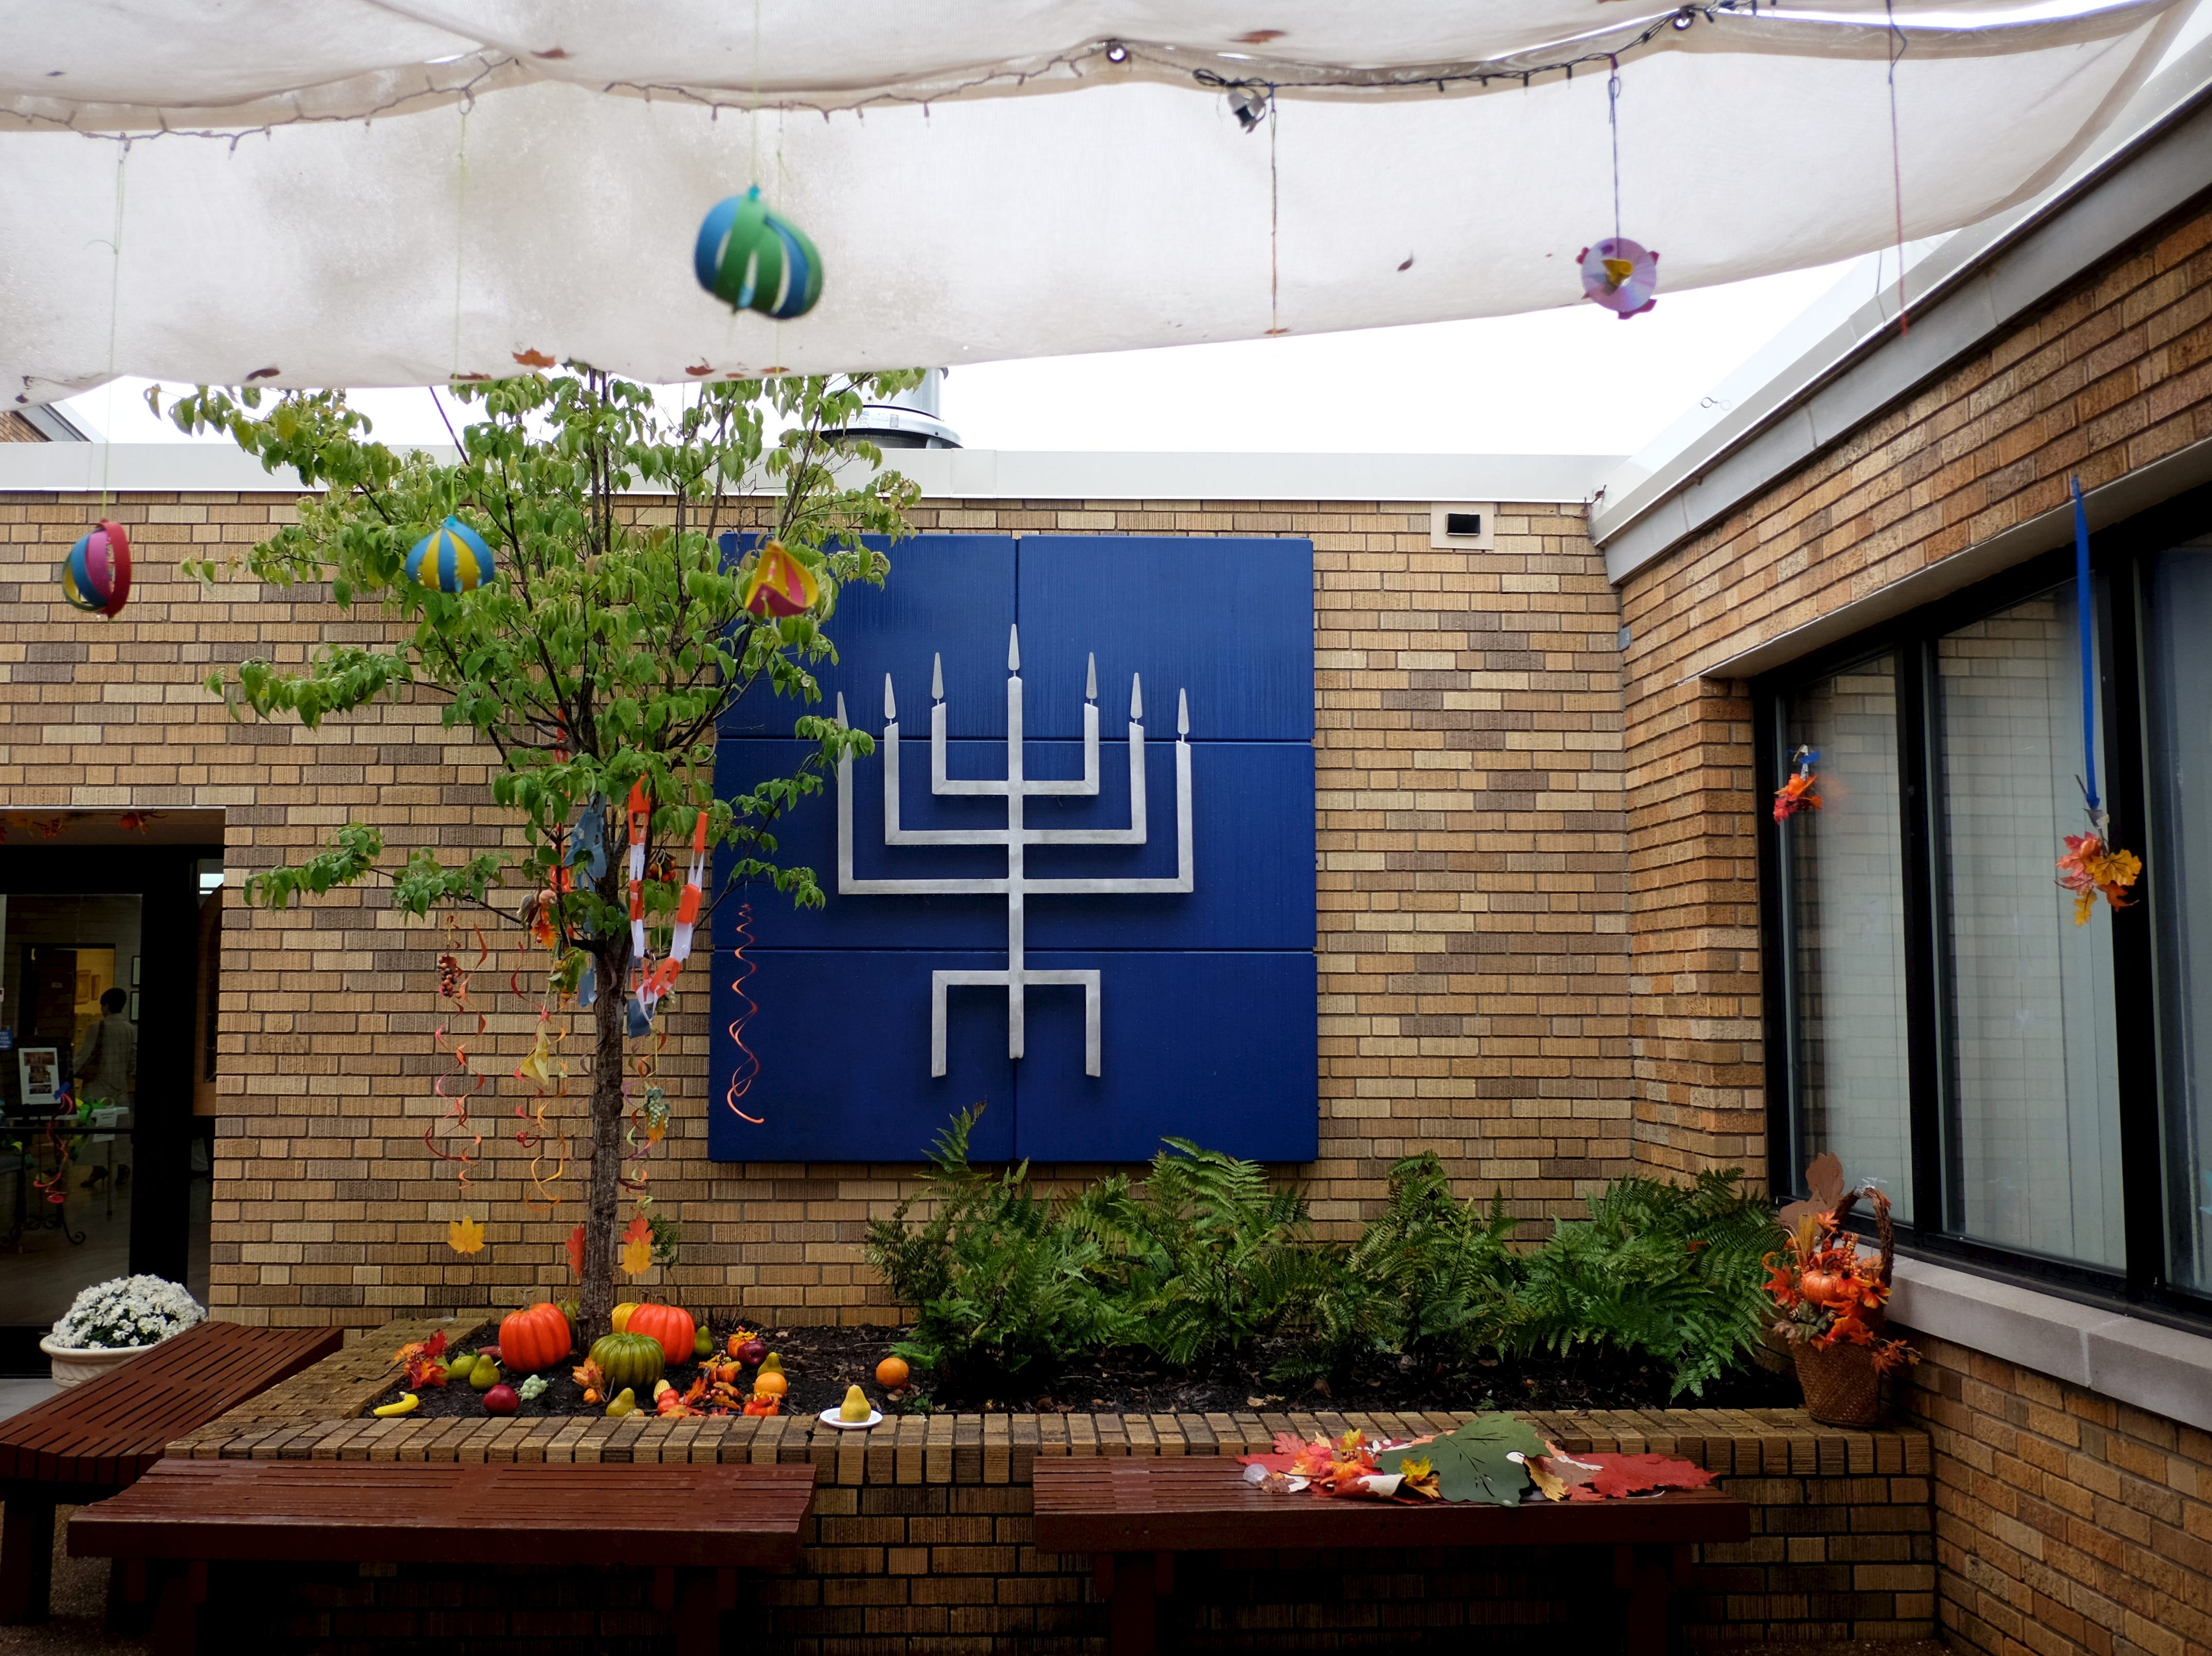 Temple Beth El's Menorah is shown beneath their Sukkah during the Jewish holiday, The Fest of Sukkot, in part of their 150th year celebration as a congregation on Friday, October 10, 2014 in Knoxville, Tenn.